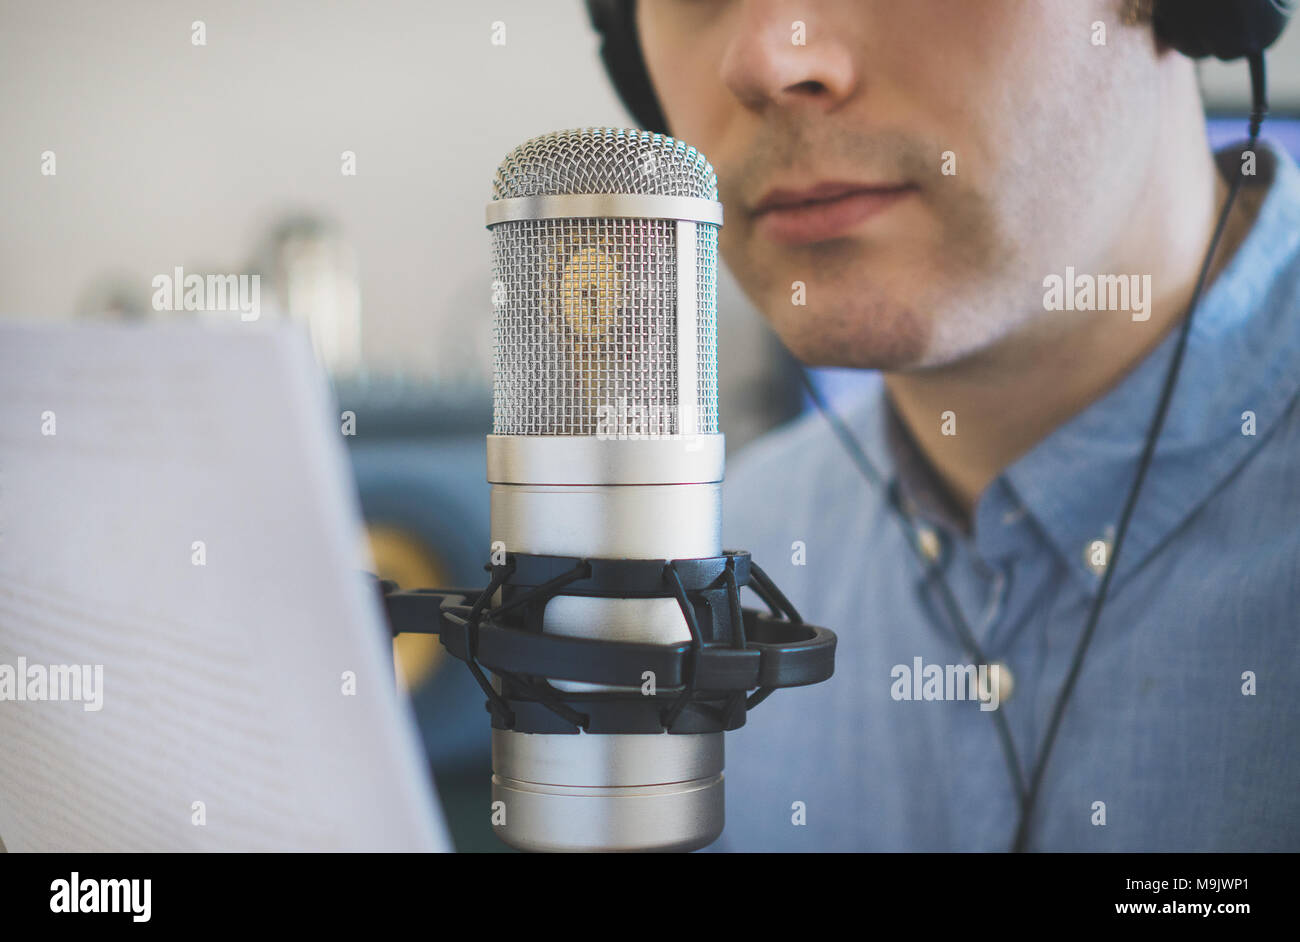 Man recording an advertisement on the radio station. - Stock Image